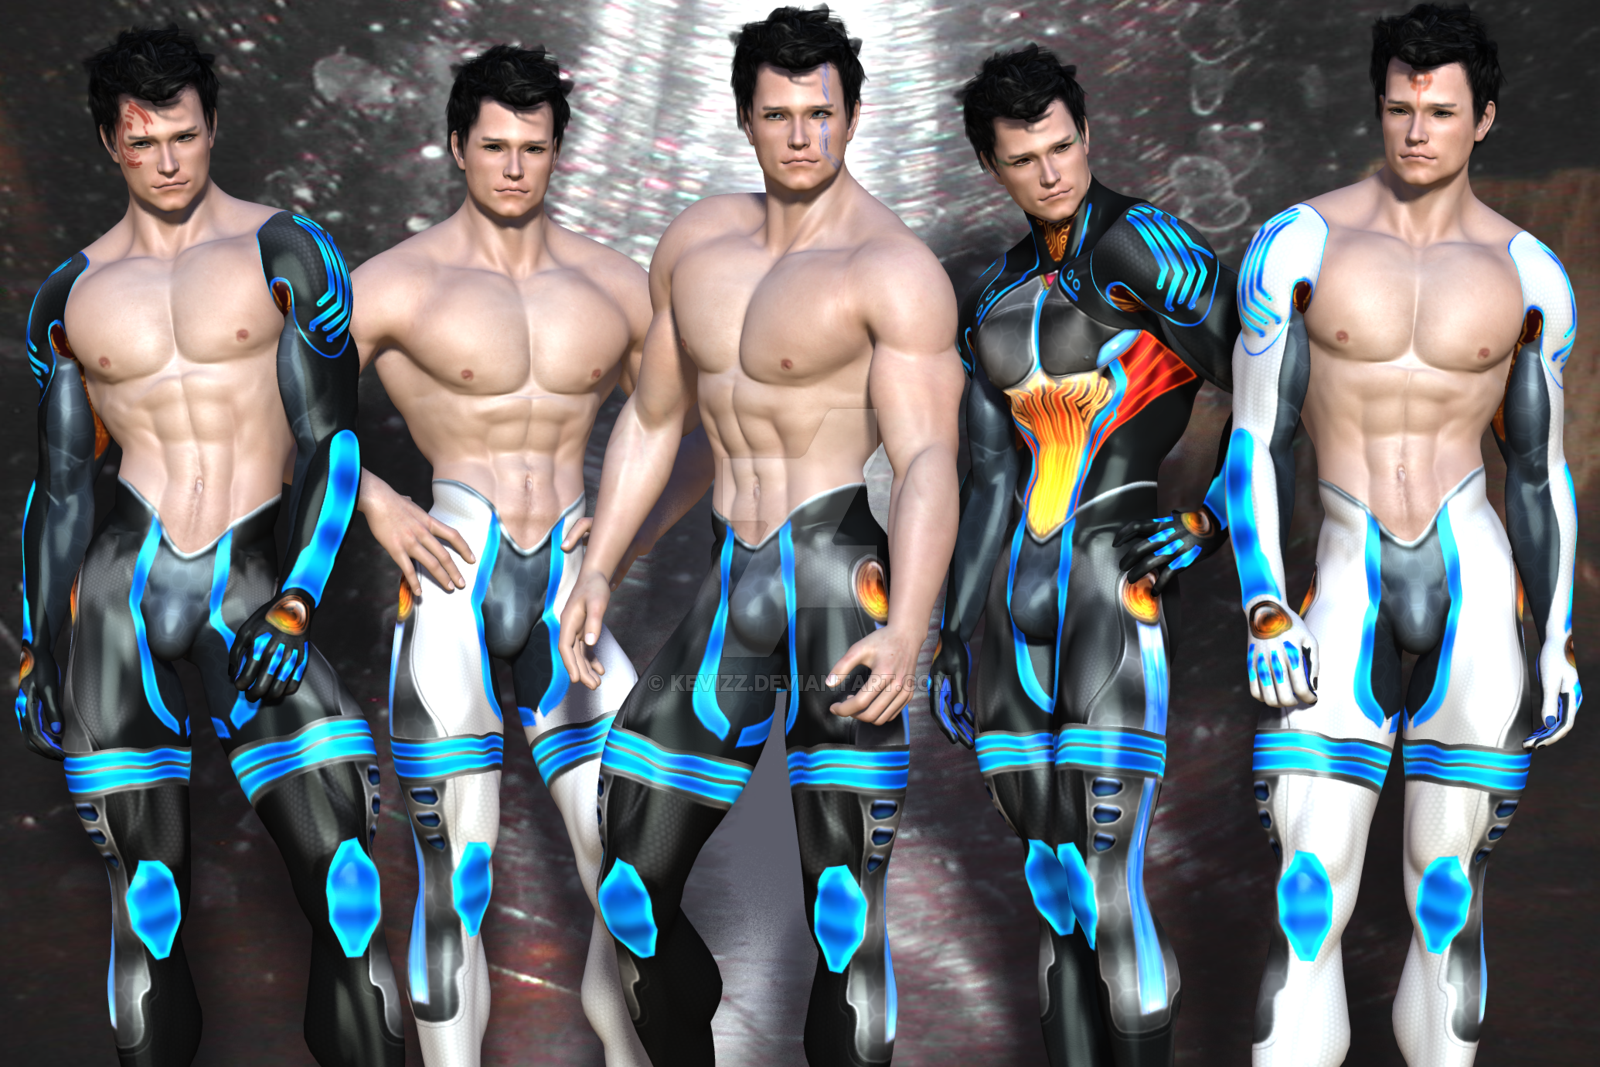 Science fiction men naked